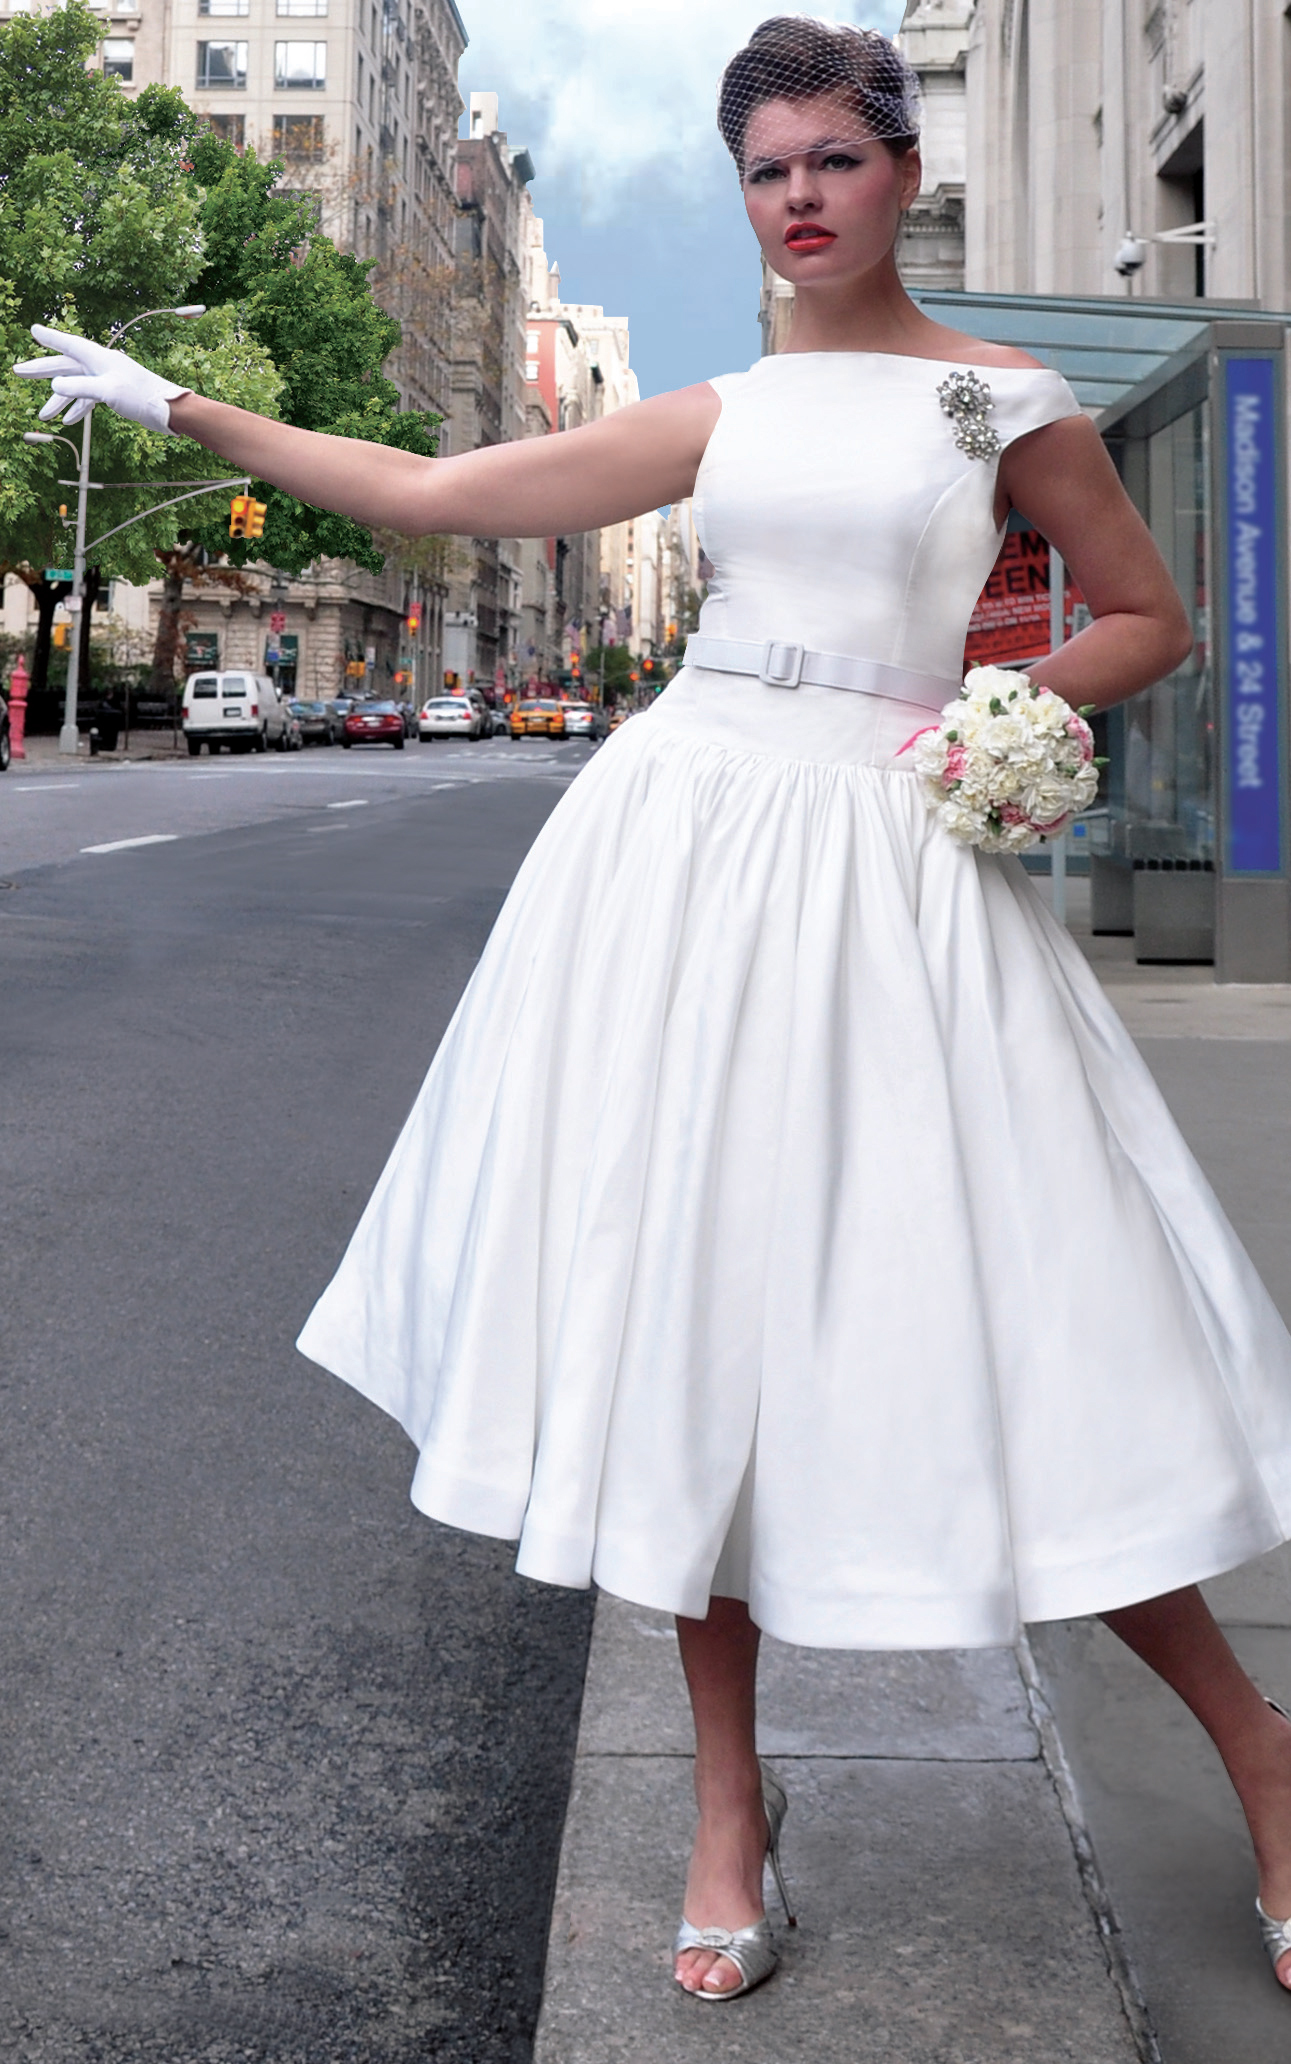 Wedding Dresses, Veils, Vintage Wedding Dresses, Fashion, white, dress, Vintage, Veil, Wedding, Gloves, Tea, Birdcage, Retro, Swing, Length, Shoulder, Off, Taffeta, 50s, Fifties, Rockabilly, Belted, Tea Length Wedding Dresses, taffeta wedding dresses